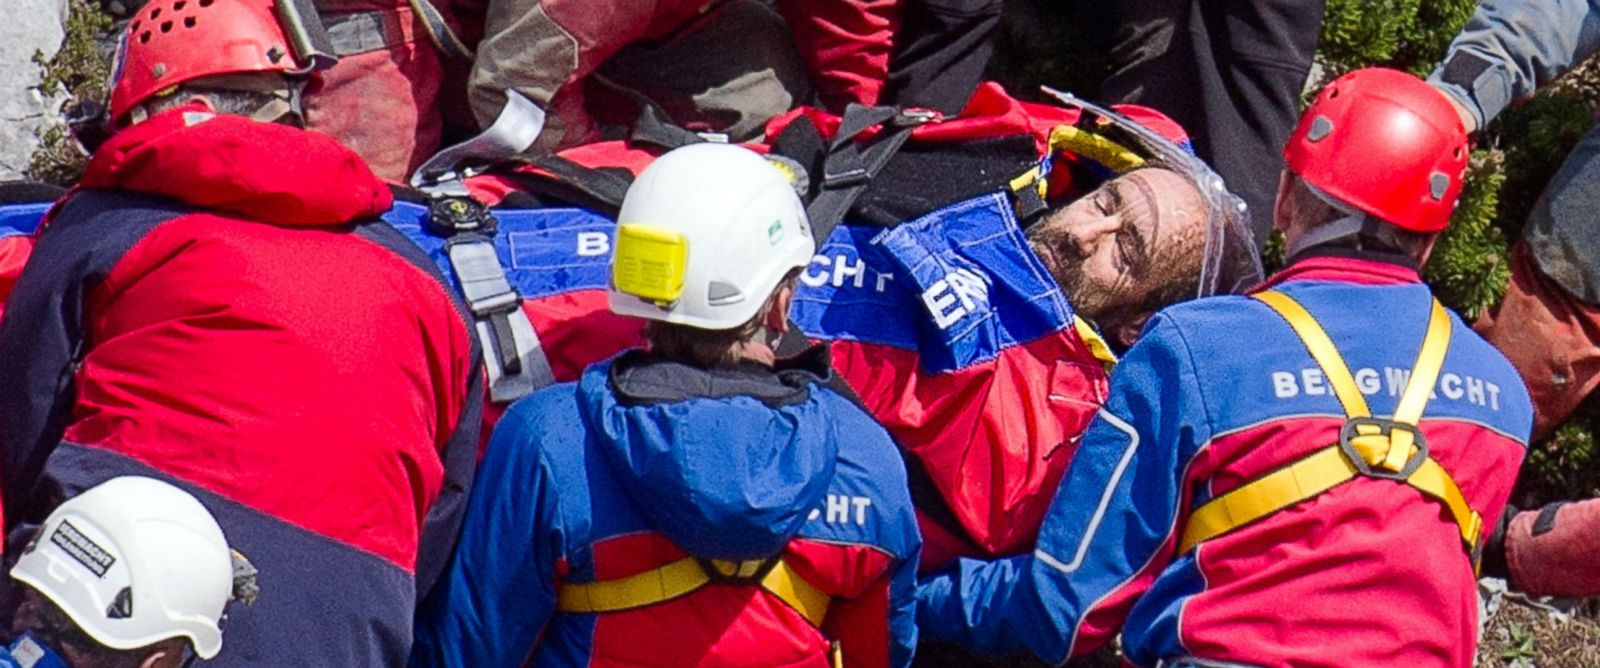 PHOTO: Rescue helpers carry injured cave explorer Johann Westhauser, center, on a stretcher near the entrance to the Riesending cave at Untersberg mountain near Marktschellenberg, Germany, June 19, 2014.